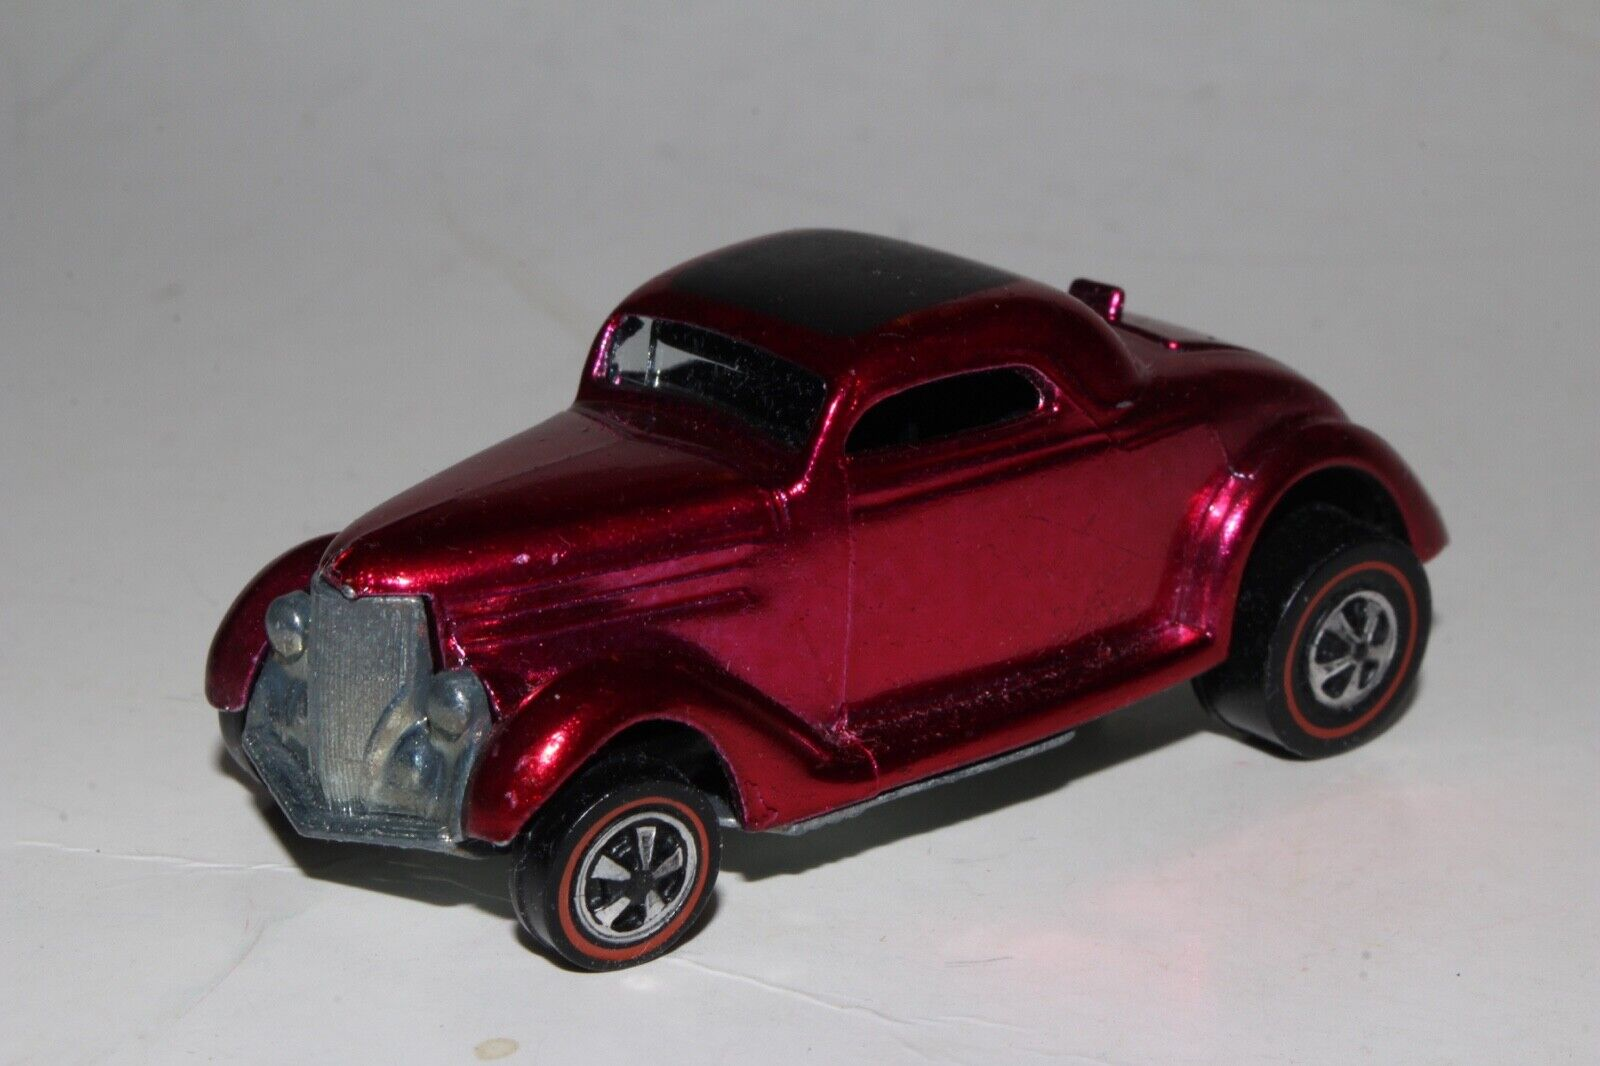 HOT WHEELS REDLINE CLASSIC '36 FORD COUPE, METALLIC pink RED, OUTSTANDING, ORIG.